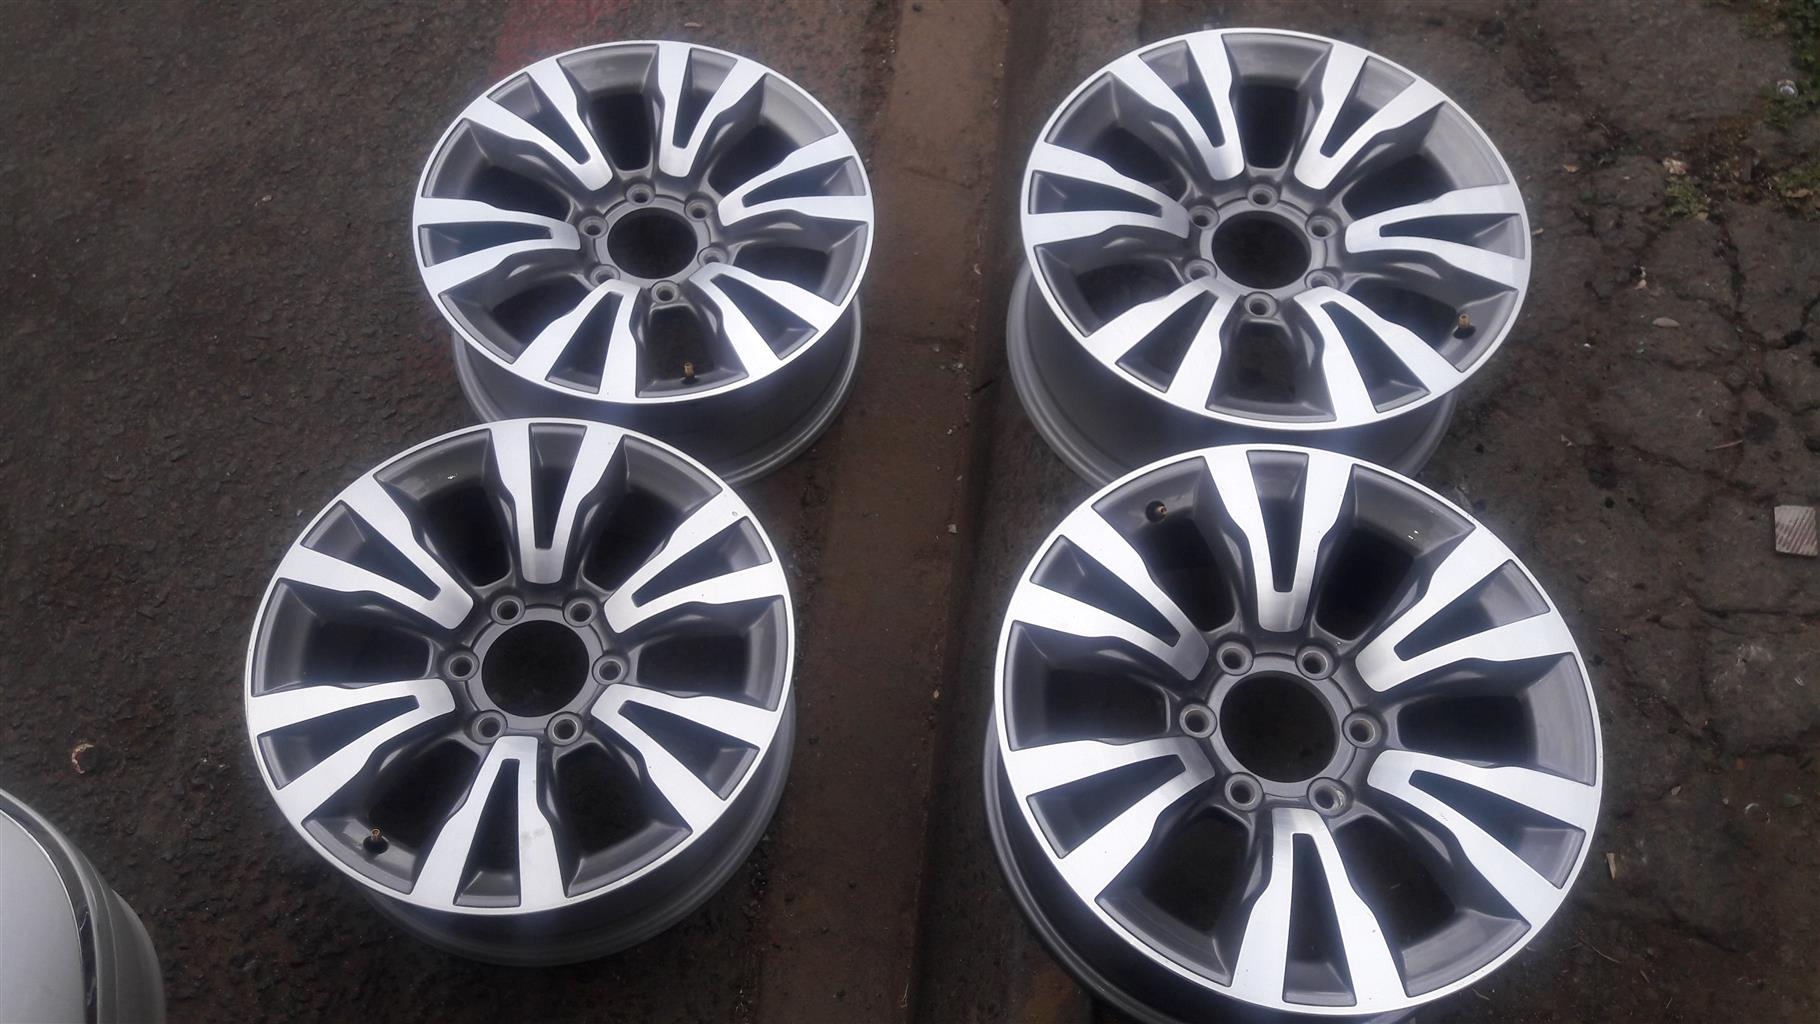 New 2016 18 inch  Izuzu silver and grey mags at very affordable prices still in perfect condition no dents and no scratches. prices include fitment.